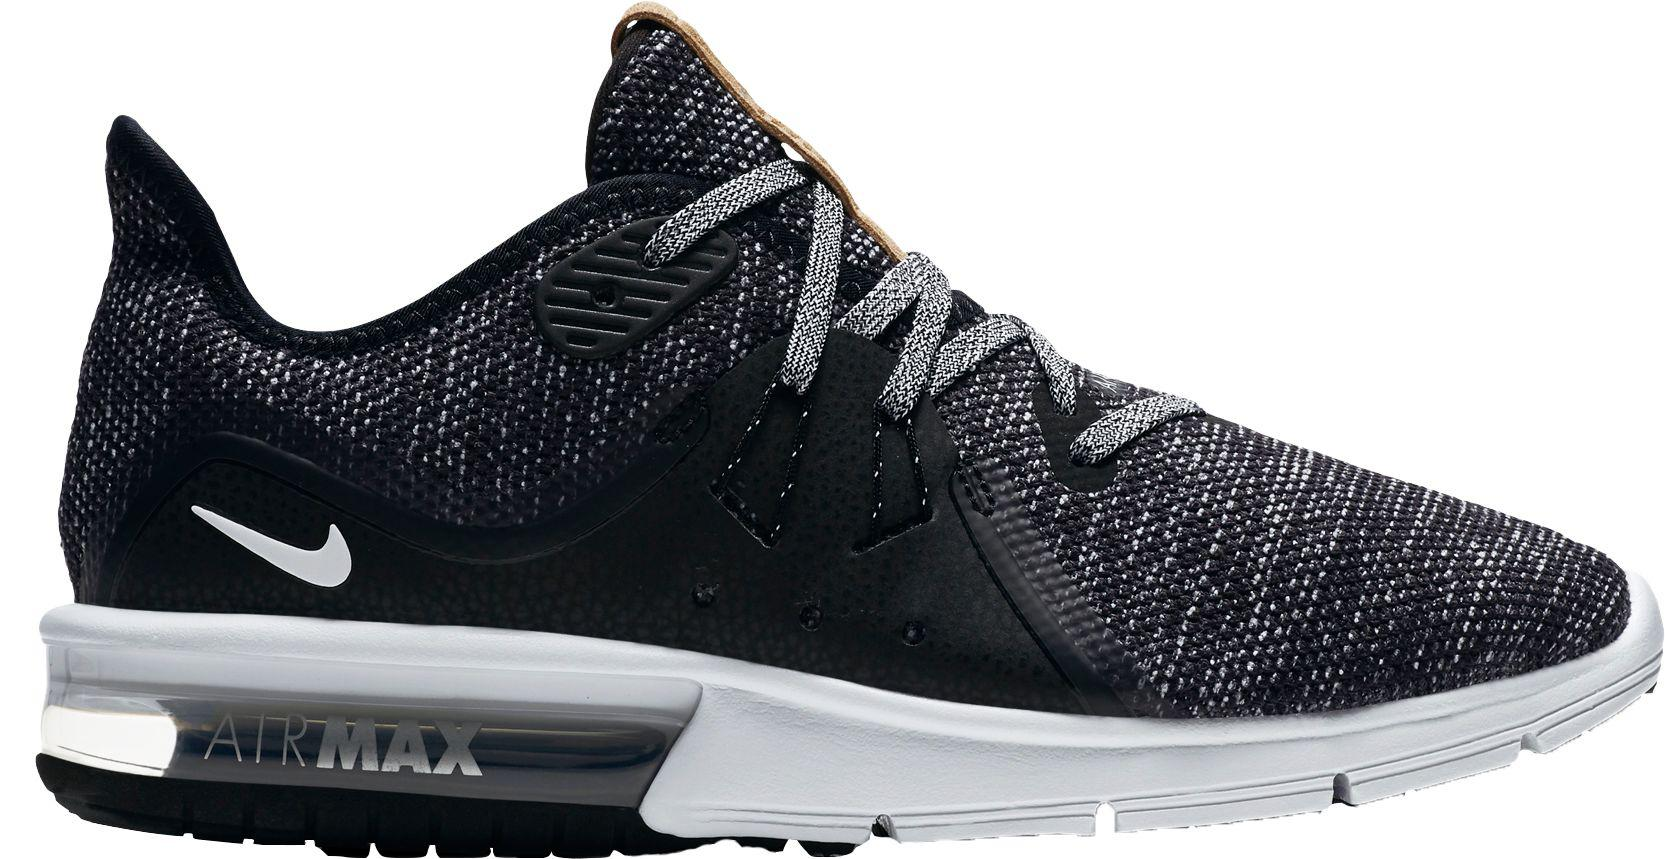 Lyst Nike Air Max Sequent 3 Running Shoes in Black